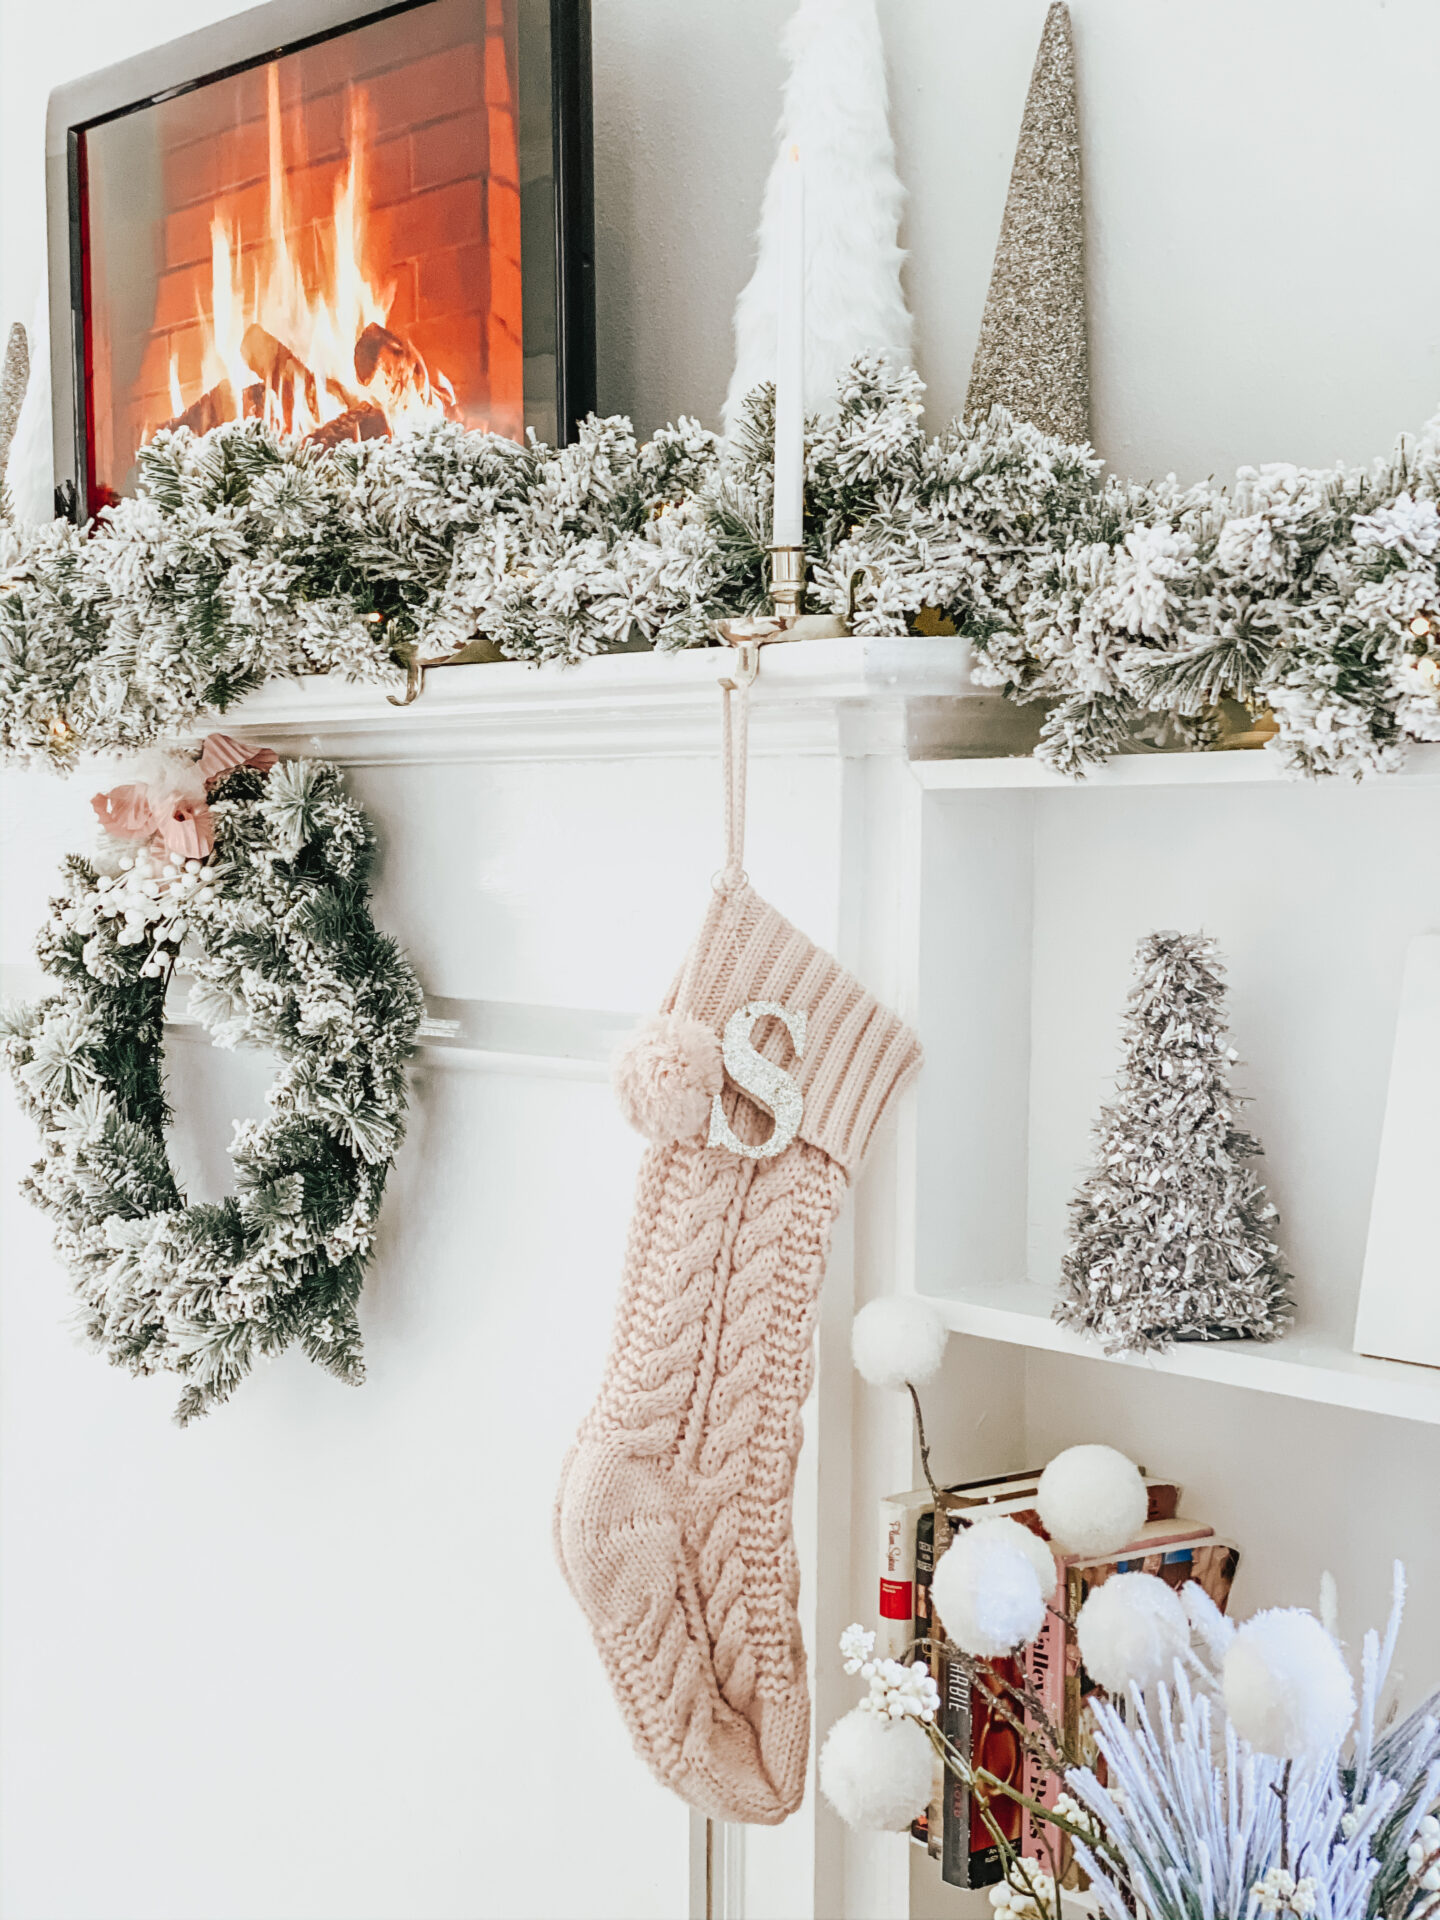 blush stocking and mantle